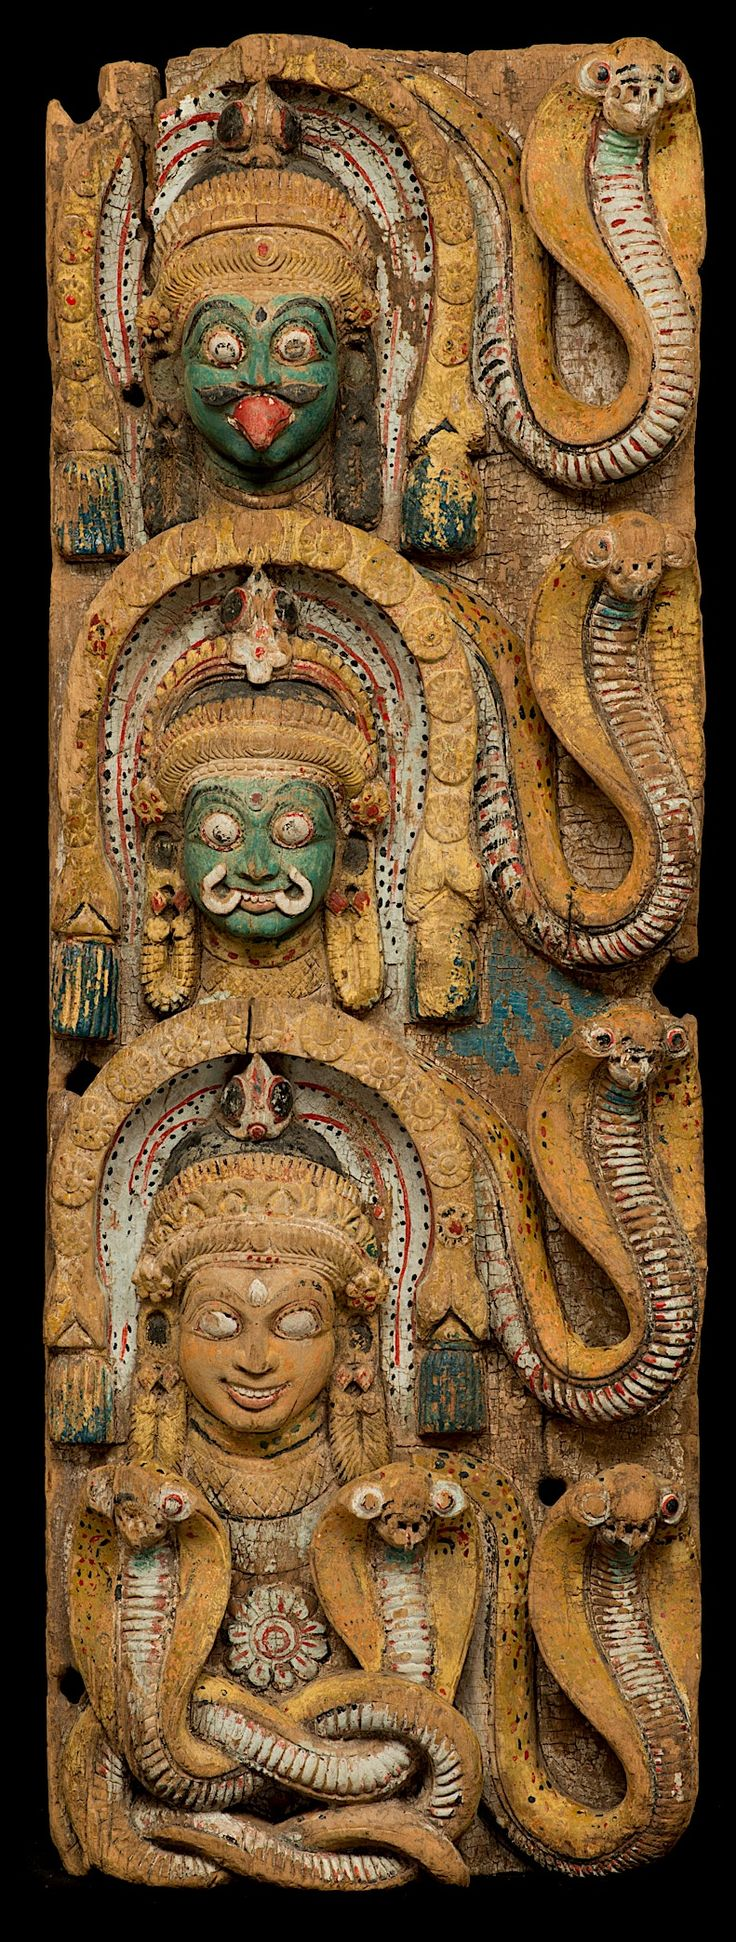 Wooden Doorframe or a Temple Chariot with Naga (Serpent) Protectors assoc. with Shiva. India, Tamil Nadu or Kerala 18th C. Wood with pigment.